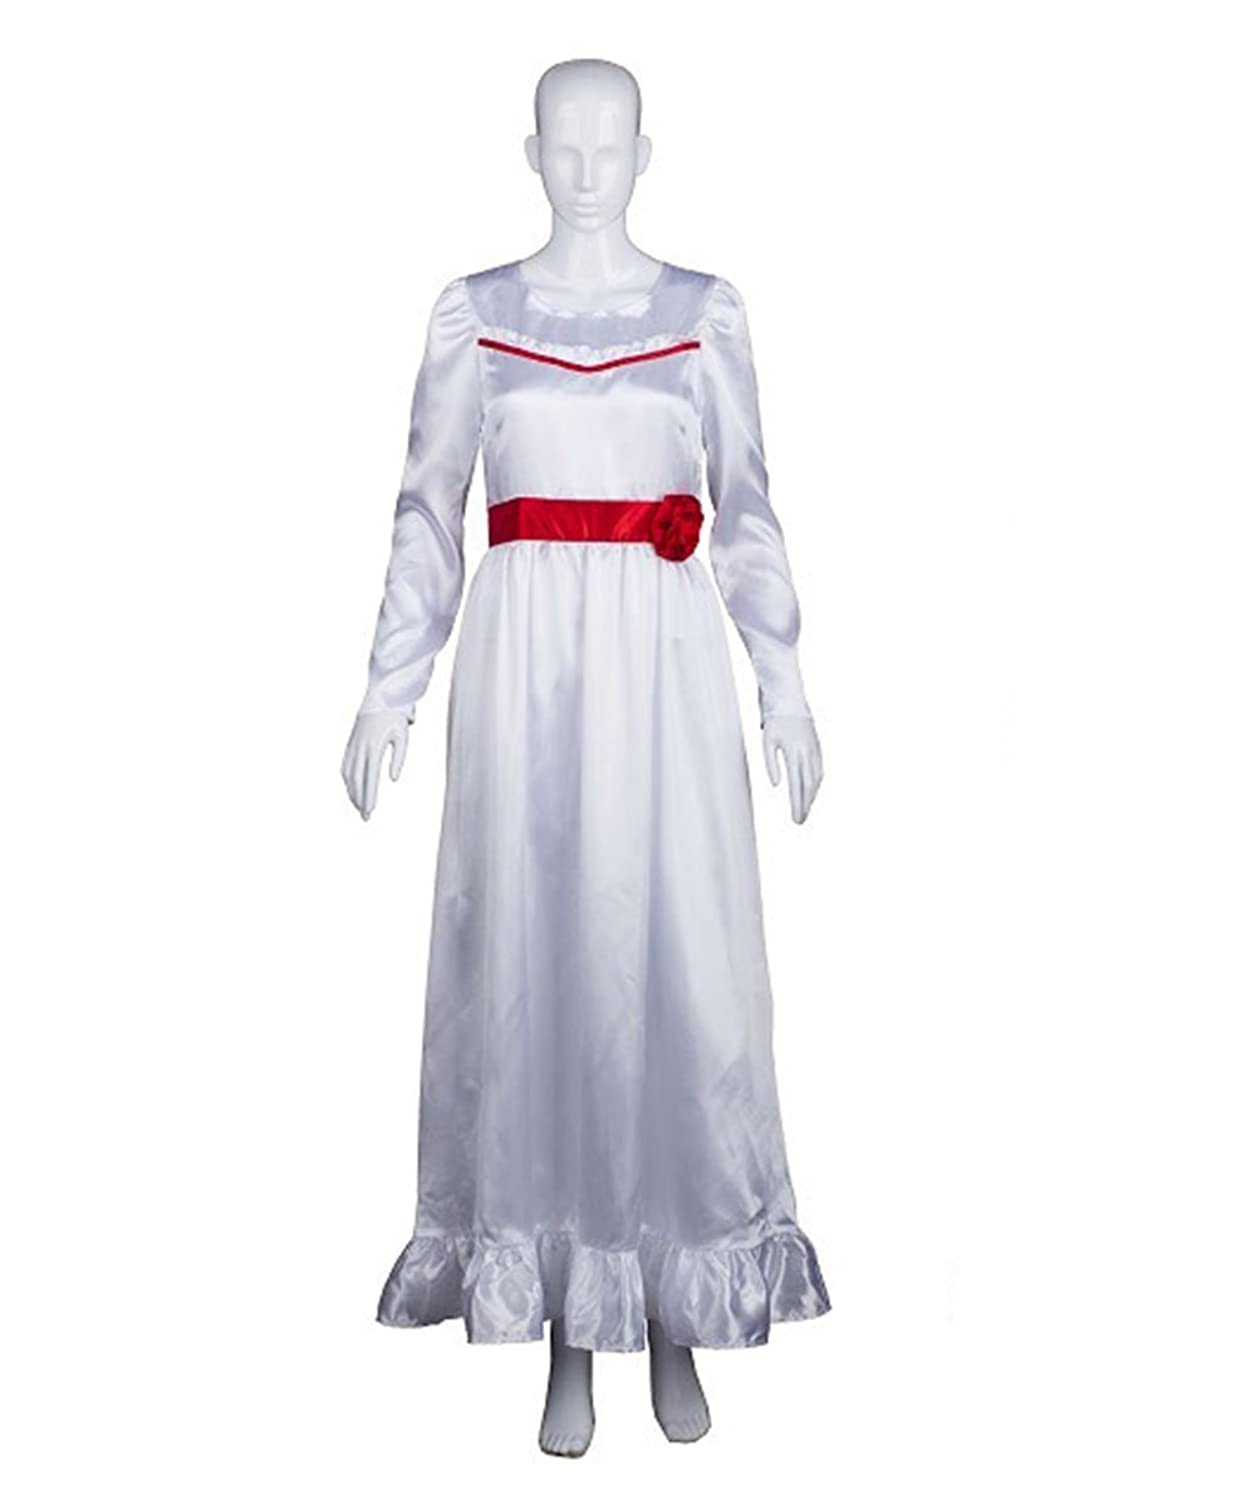 Halloween Party Online Annabelle Costume, White Adult HC-314